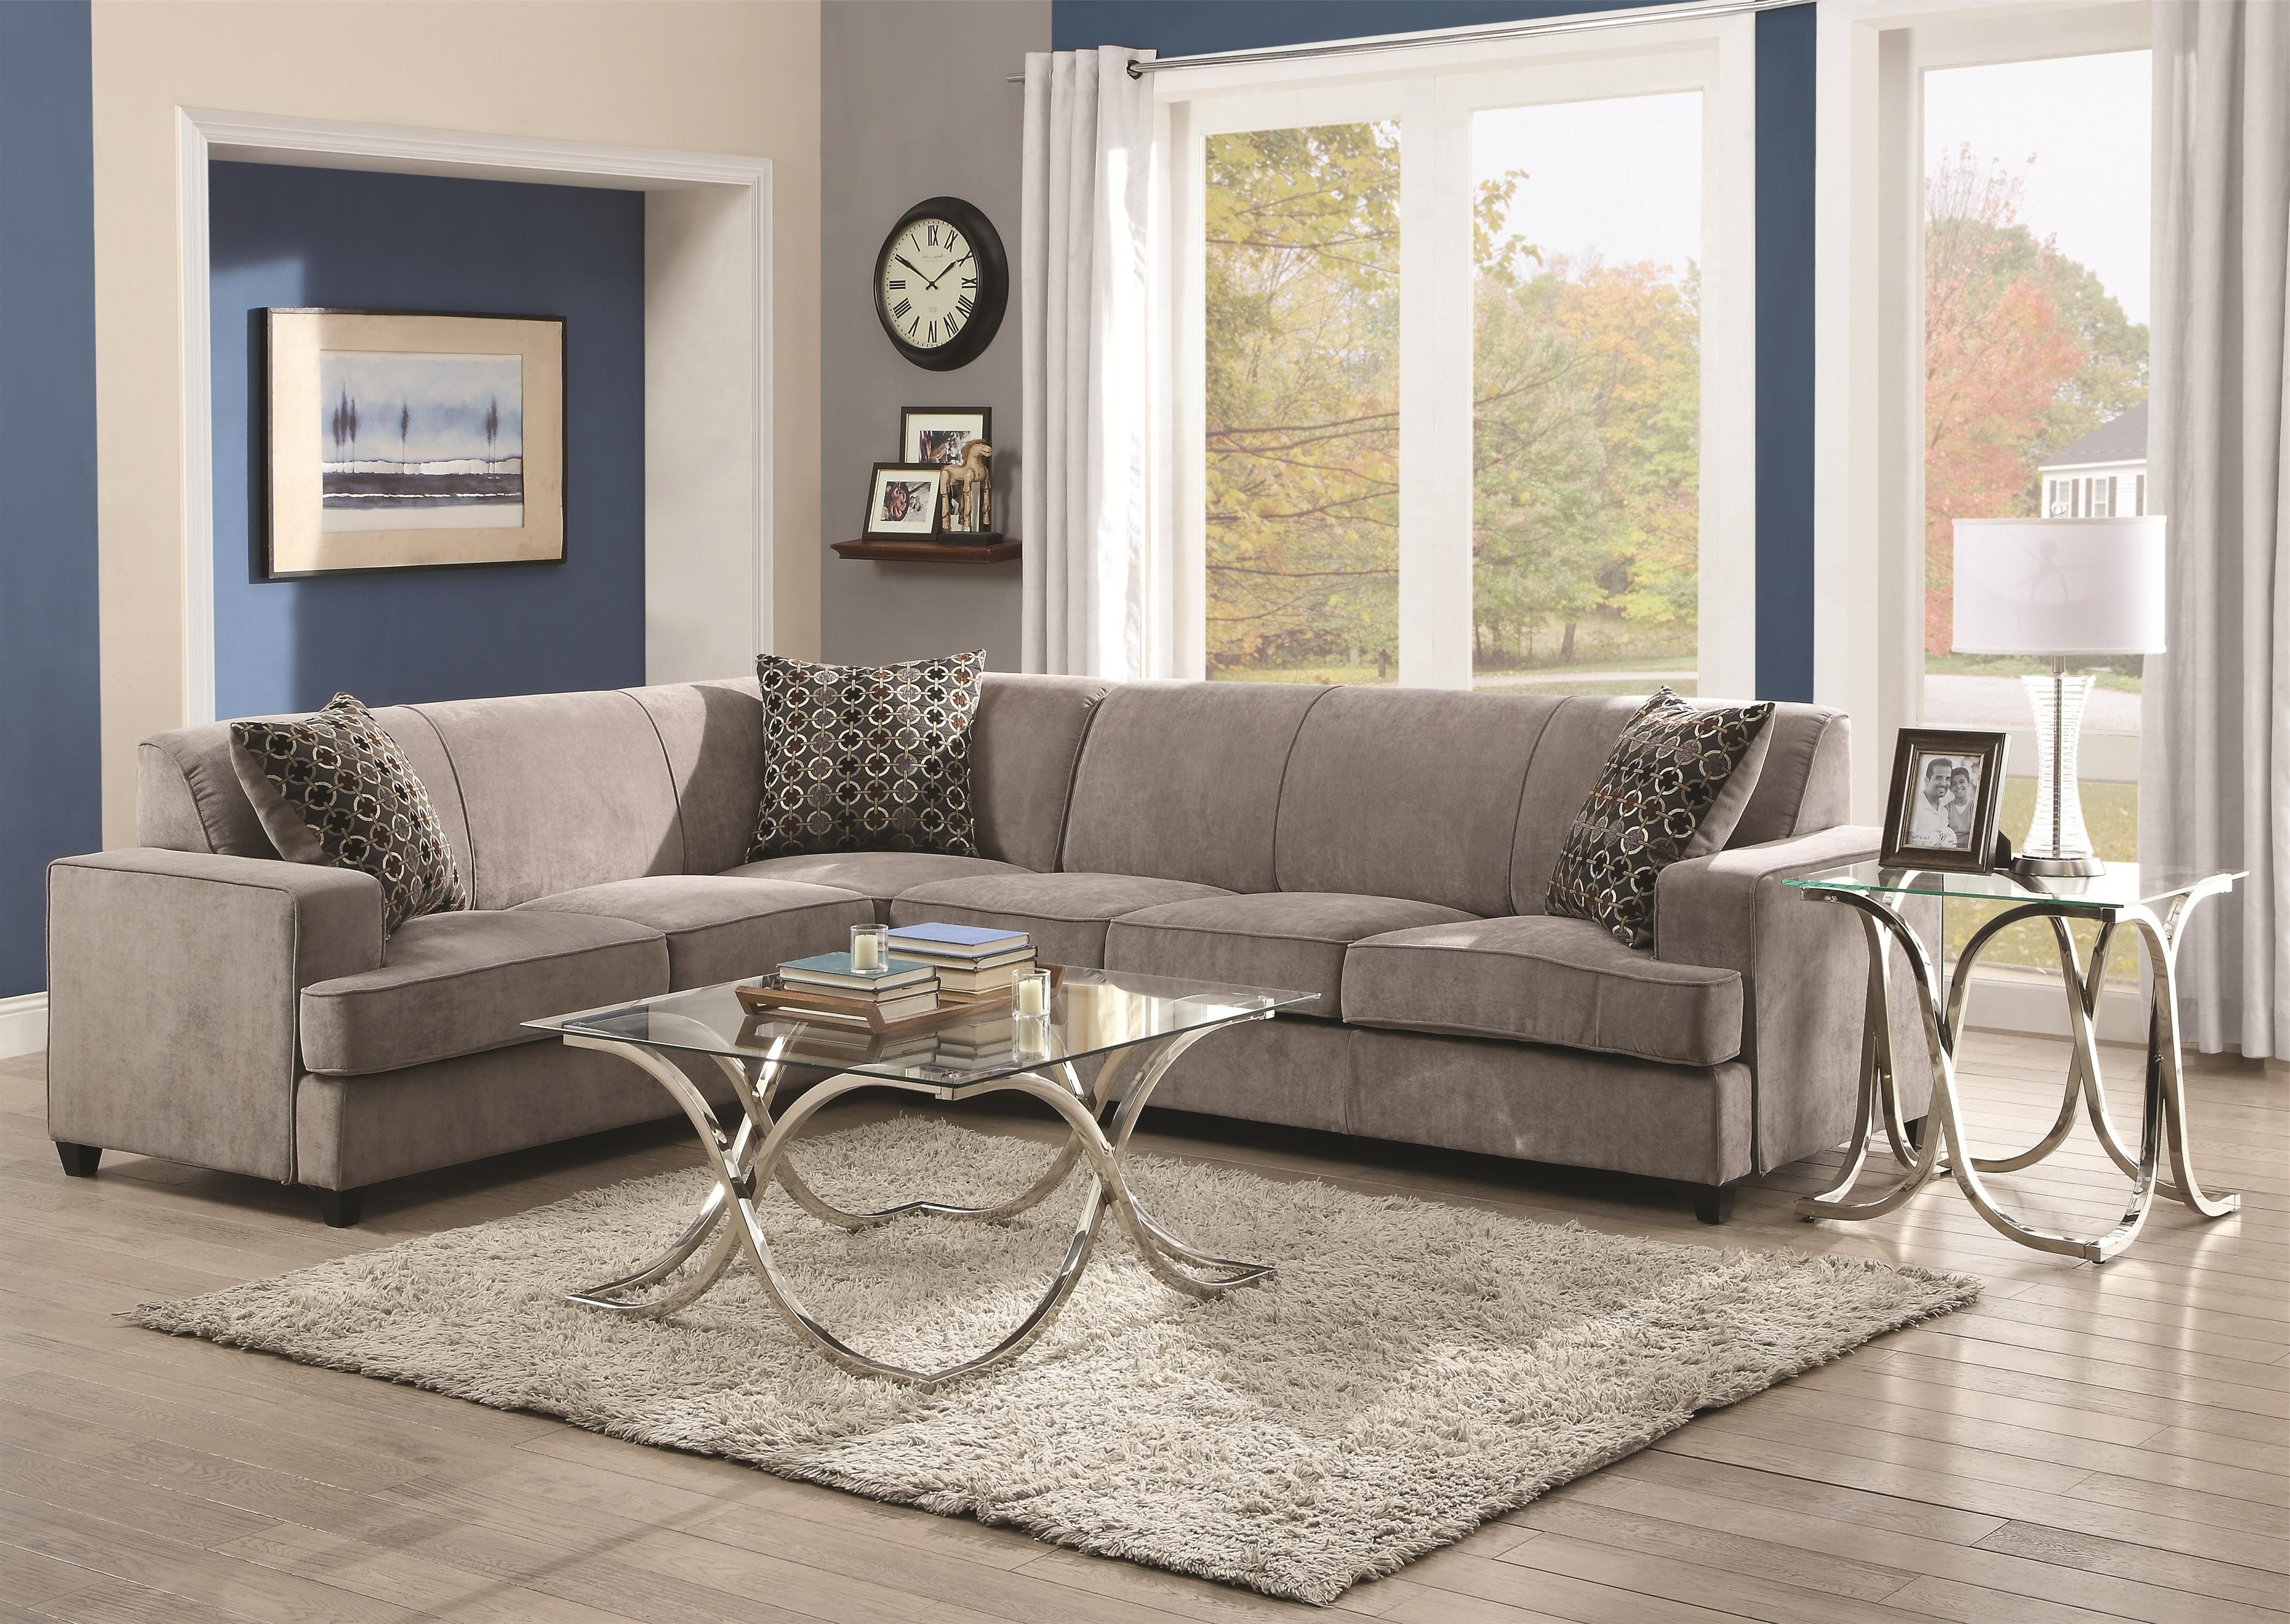 Tess Sectional Sofa For Cornerscoaster (View 19 of 20)